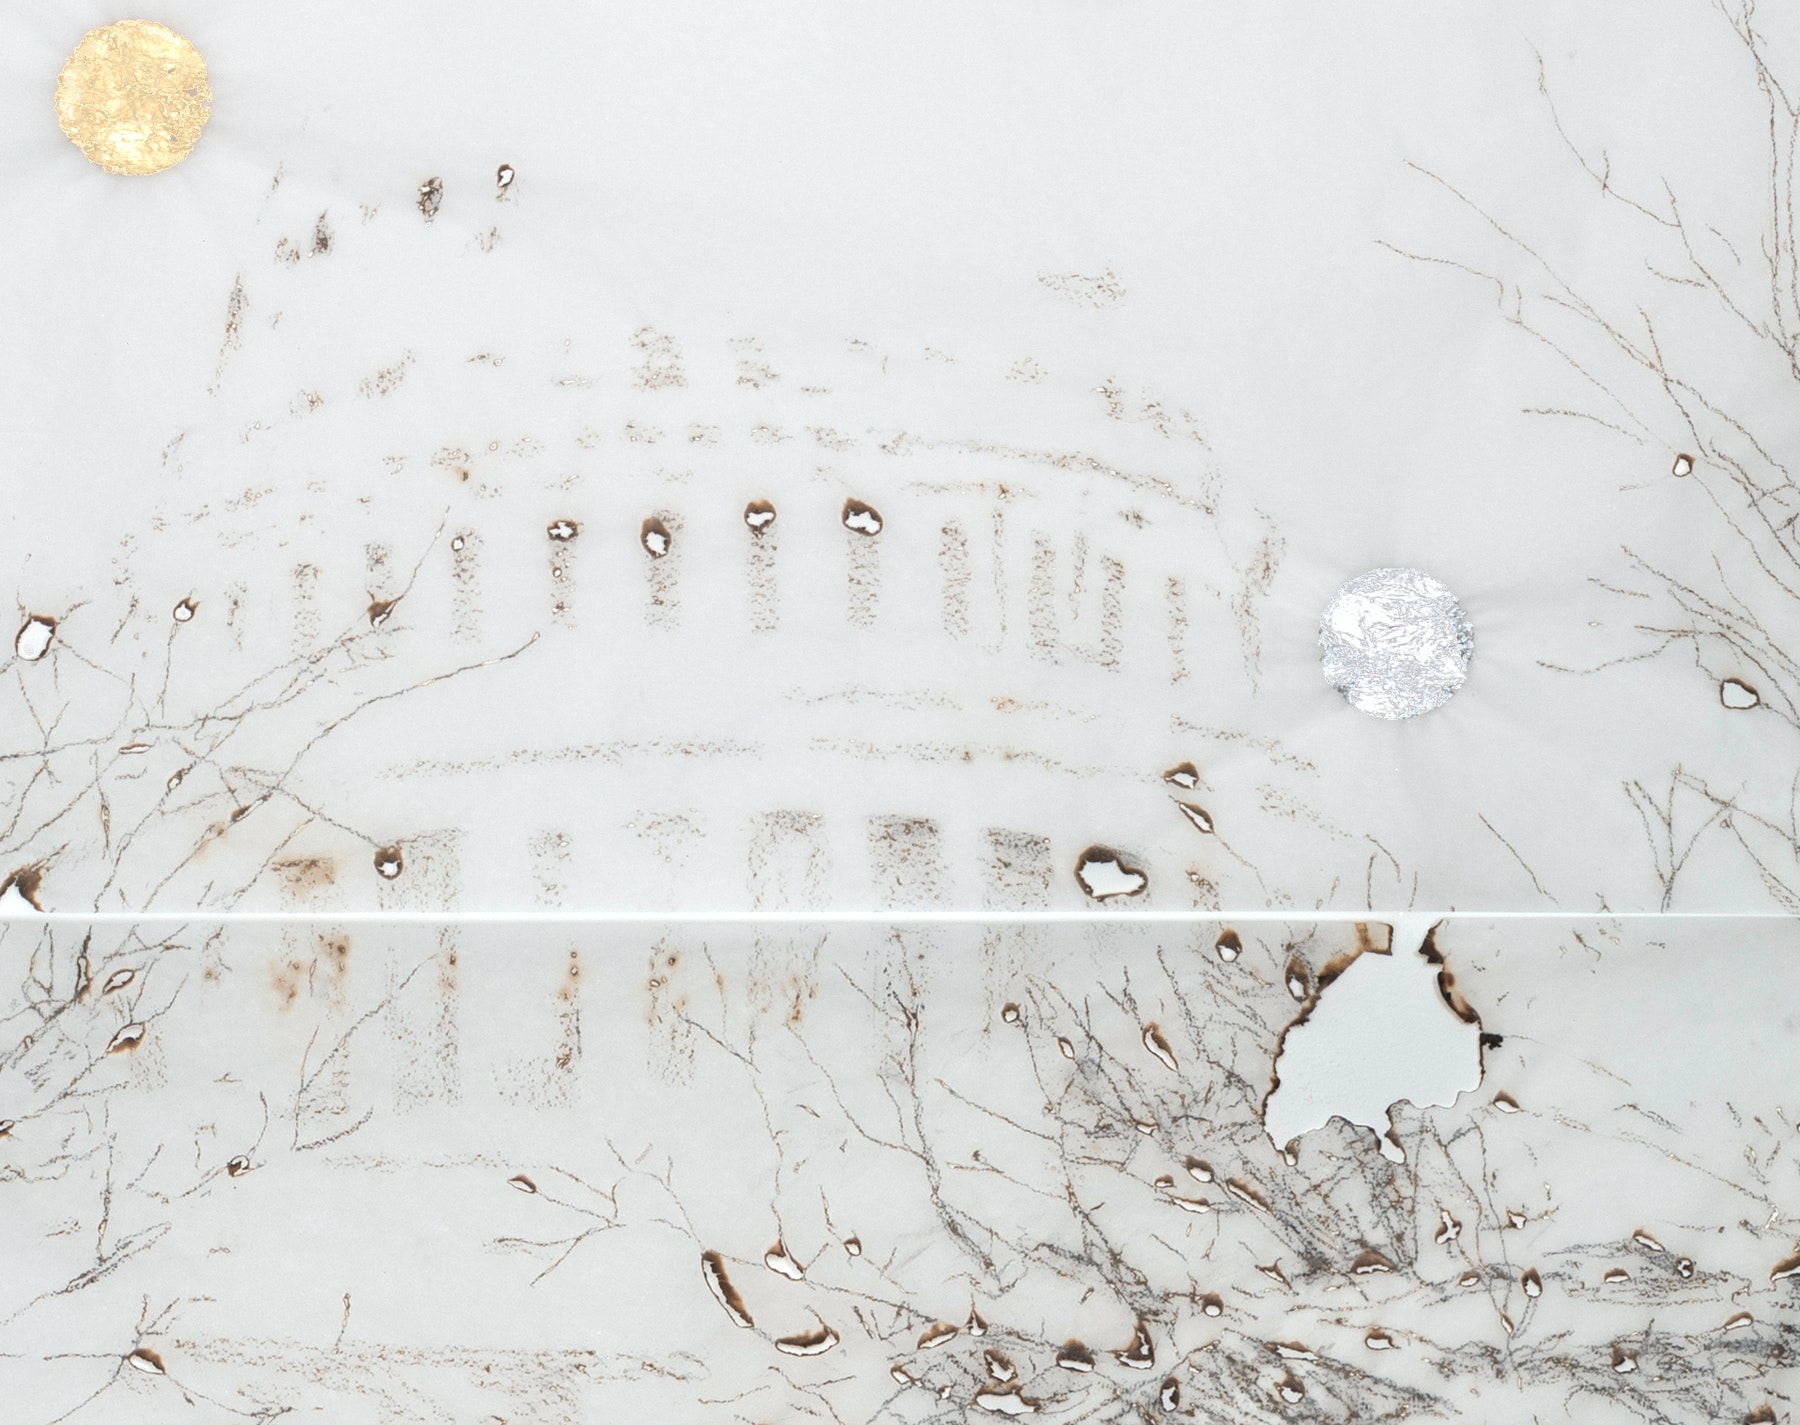 US Capitol in the snow by Davide Cantoni